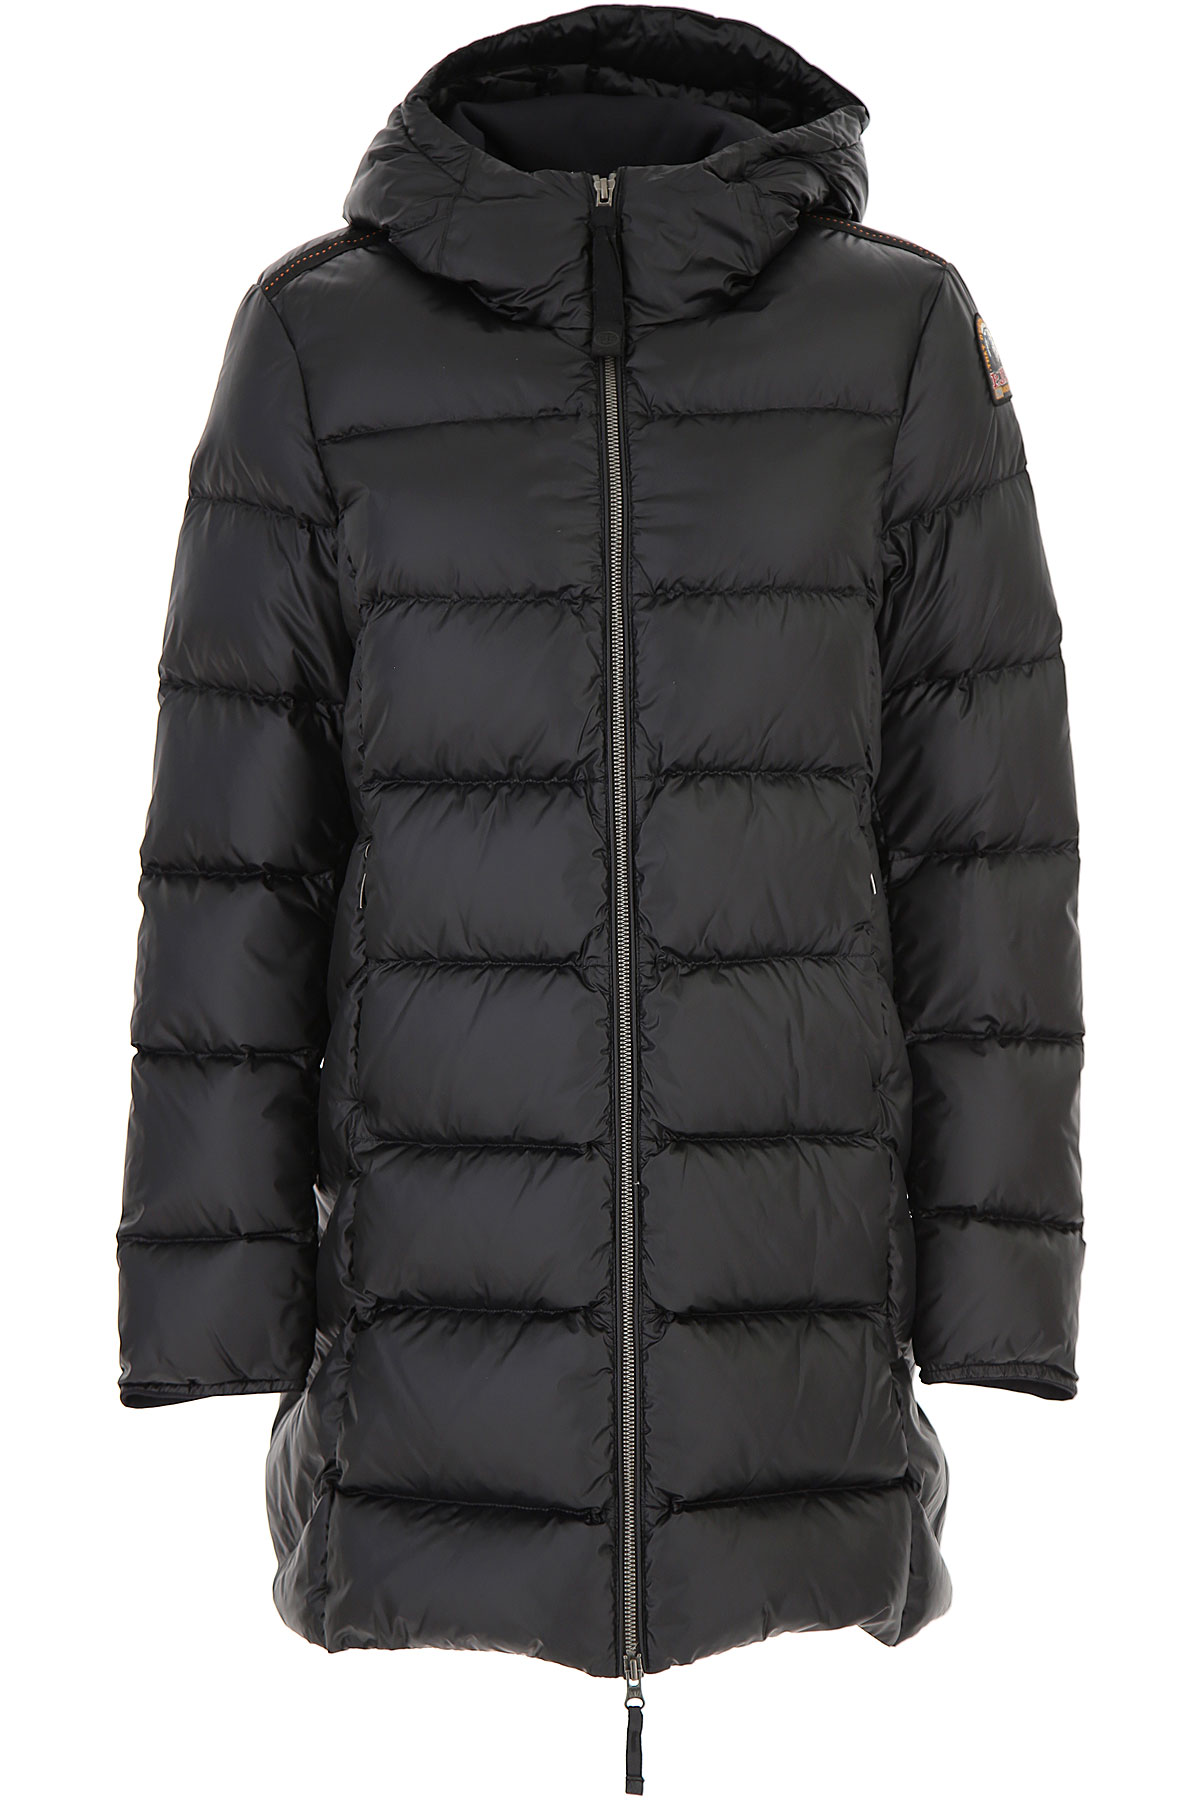 Parajumpers Down Jacket for Women, Puffer Ski Jacket On Sale, Black, polyester, 2019, 10 6 8